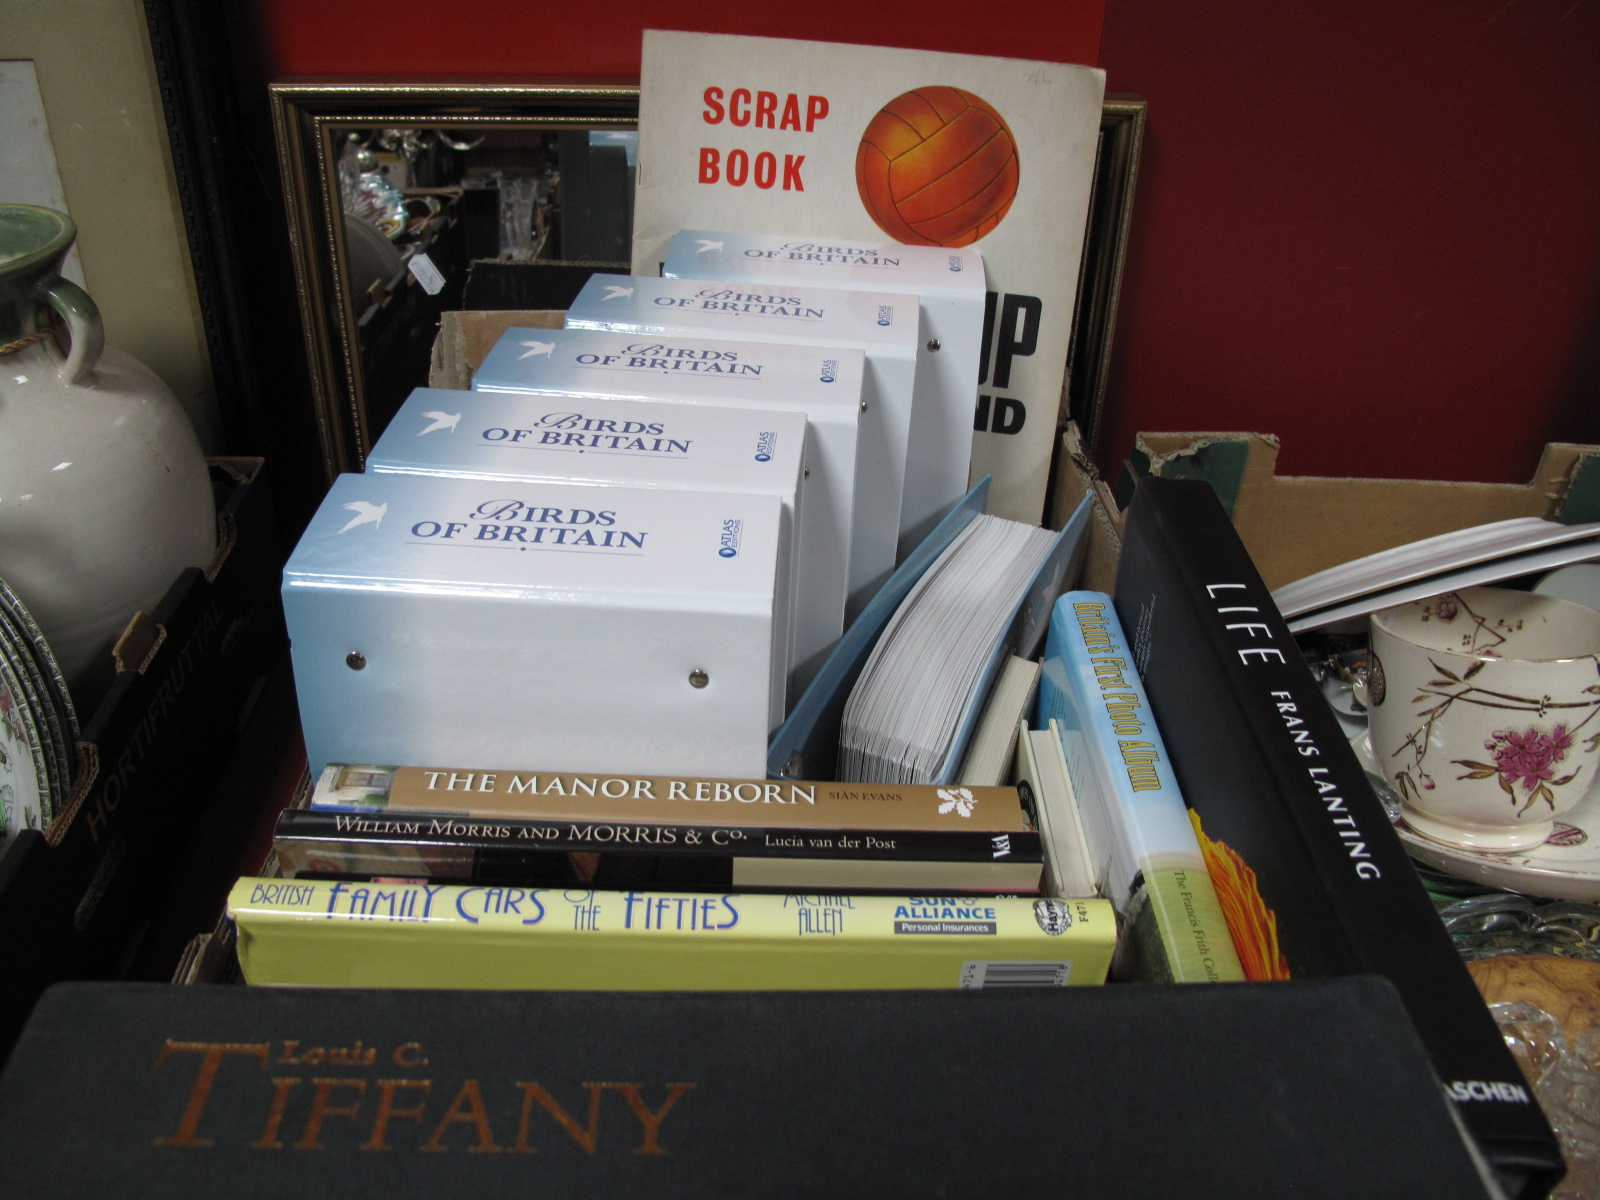 Lot 15 - Louis C. Tiffany, William Morris, The Oldest Sheffield Plater, other books, Atlas Editions Birds